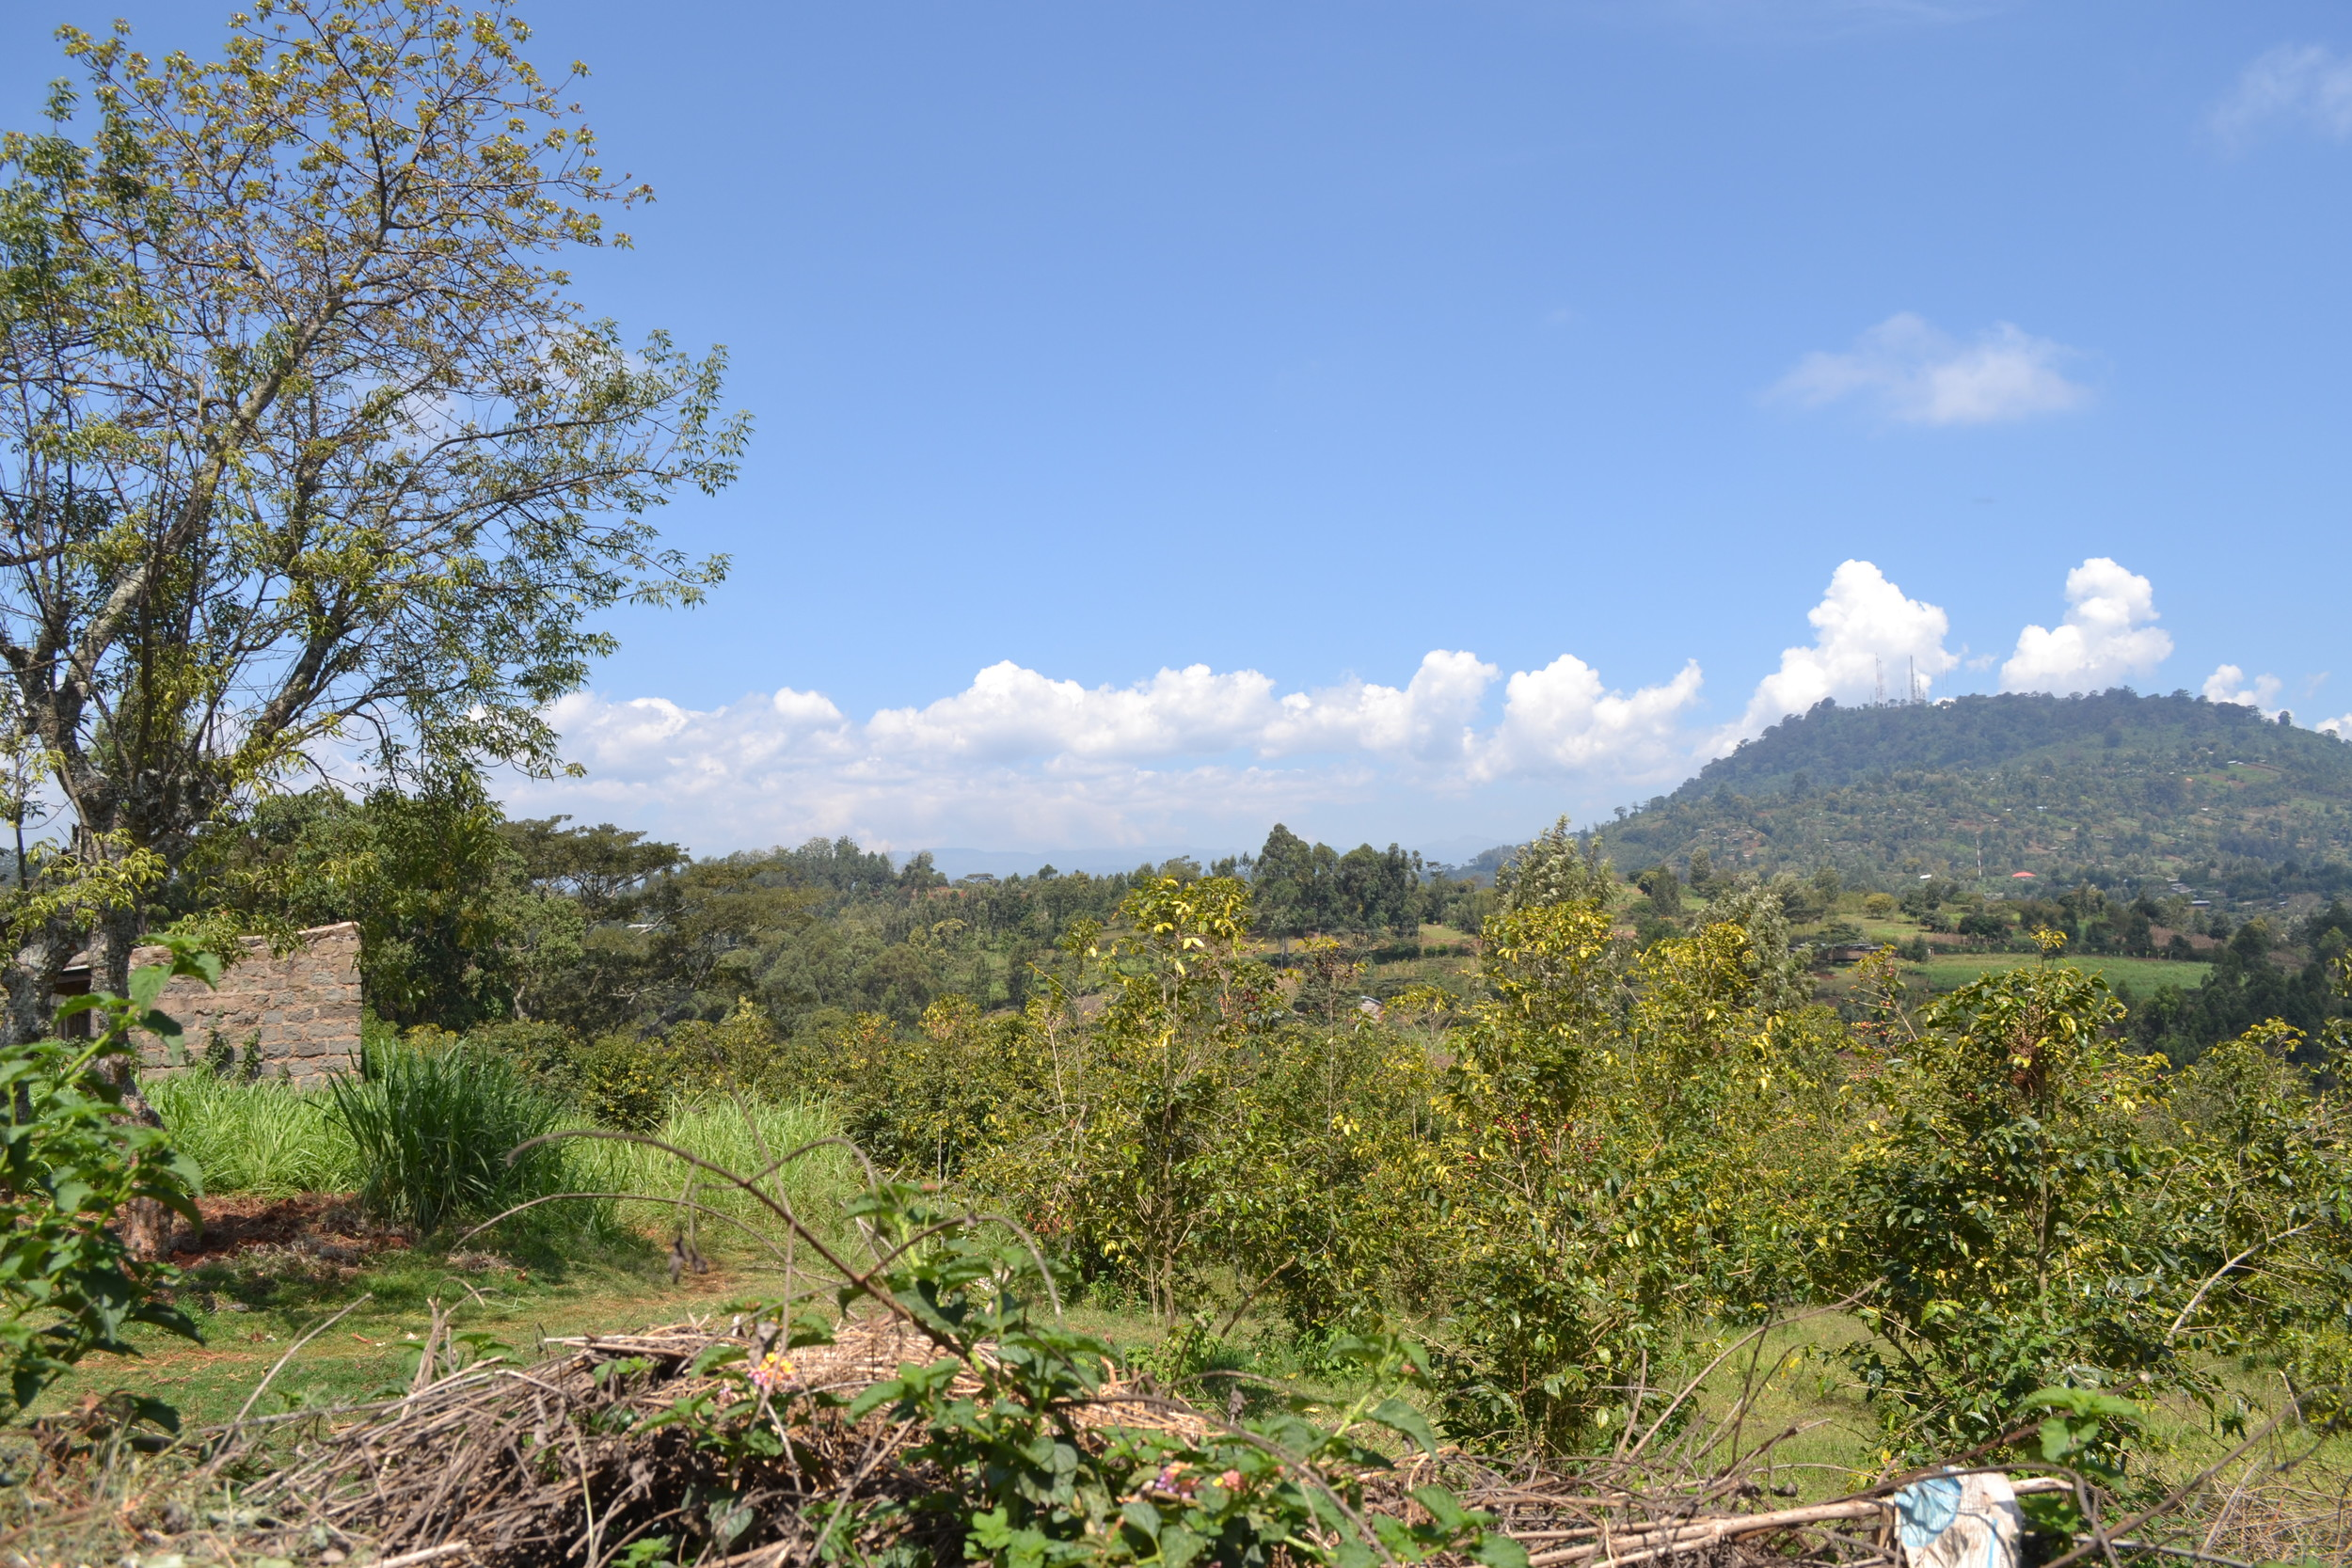 The view from the Metropolitan Sanctuary for Sick Children, Nyeri, Kenya.